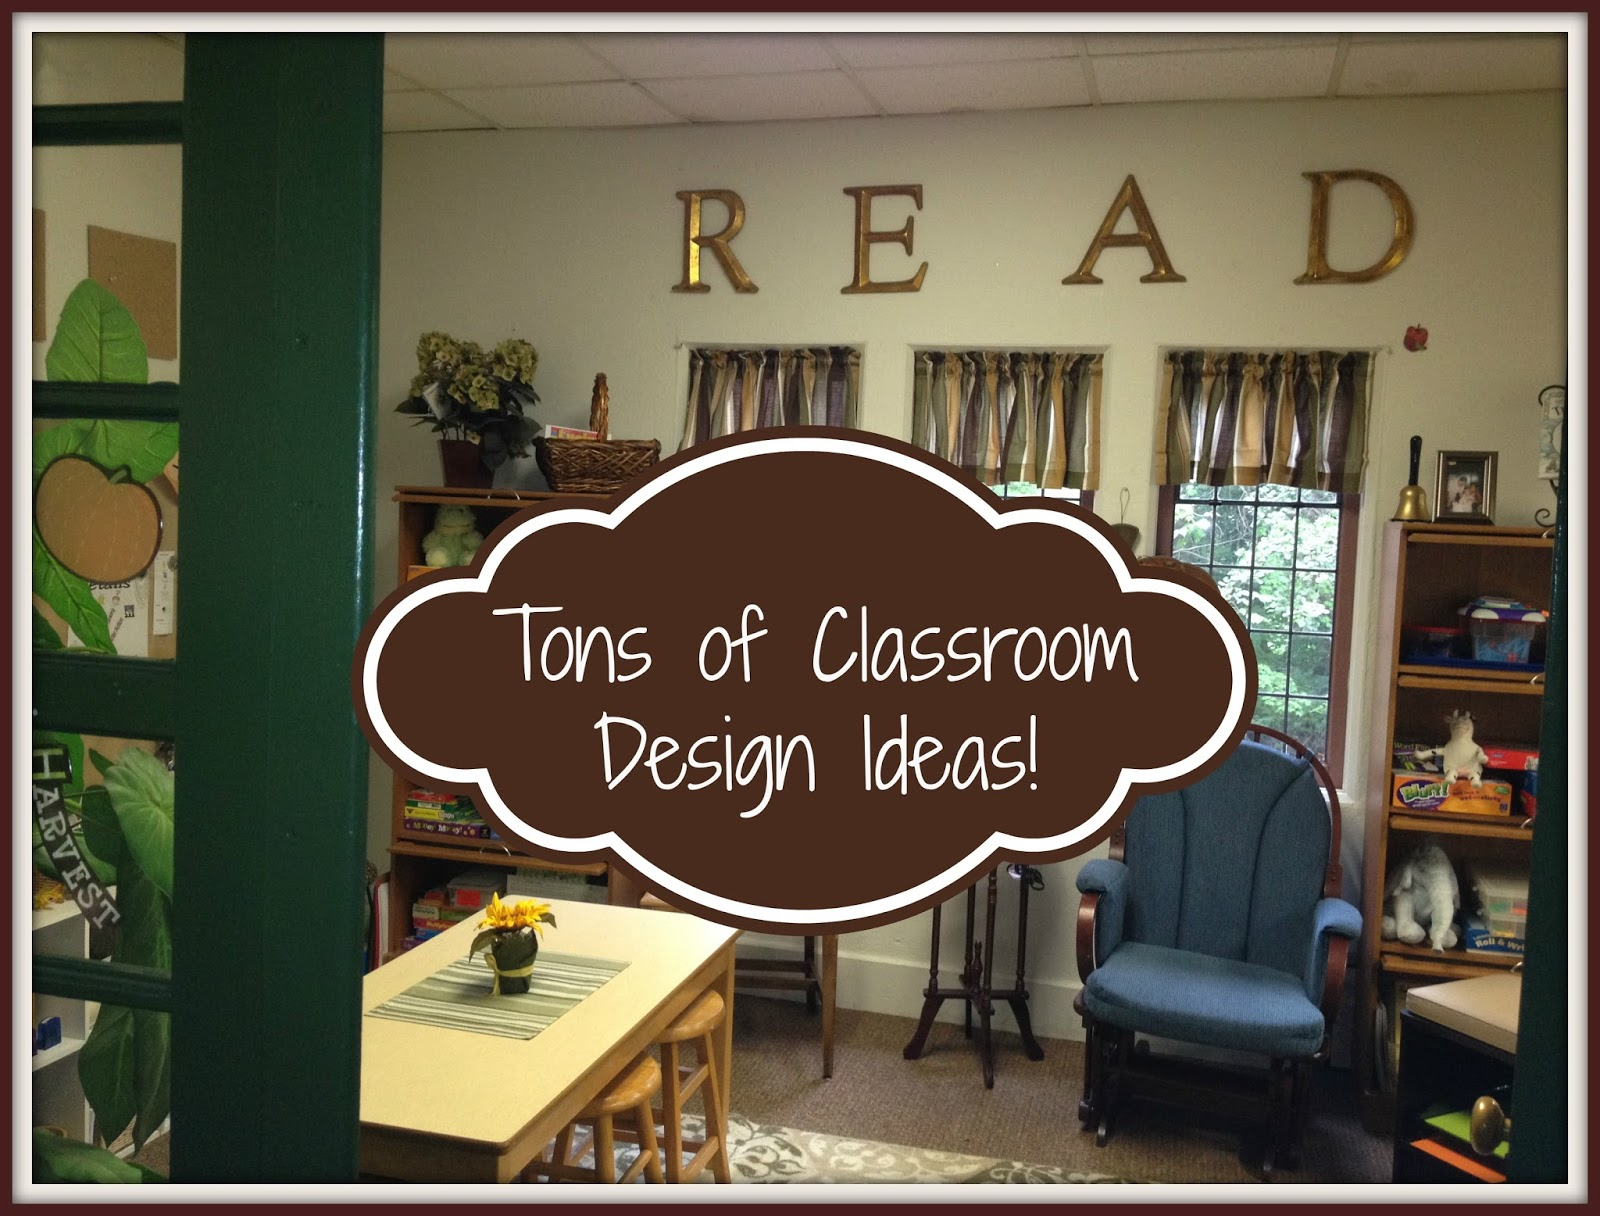 Beautiful Elementary Classrooms ~ Tons of classroom design ideas for setting up your cozy